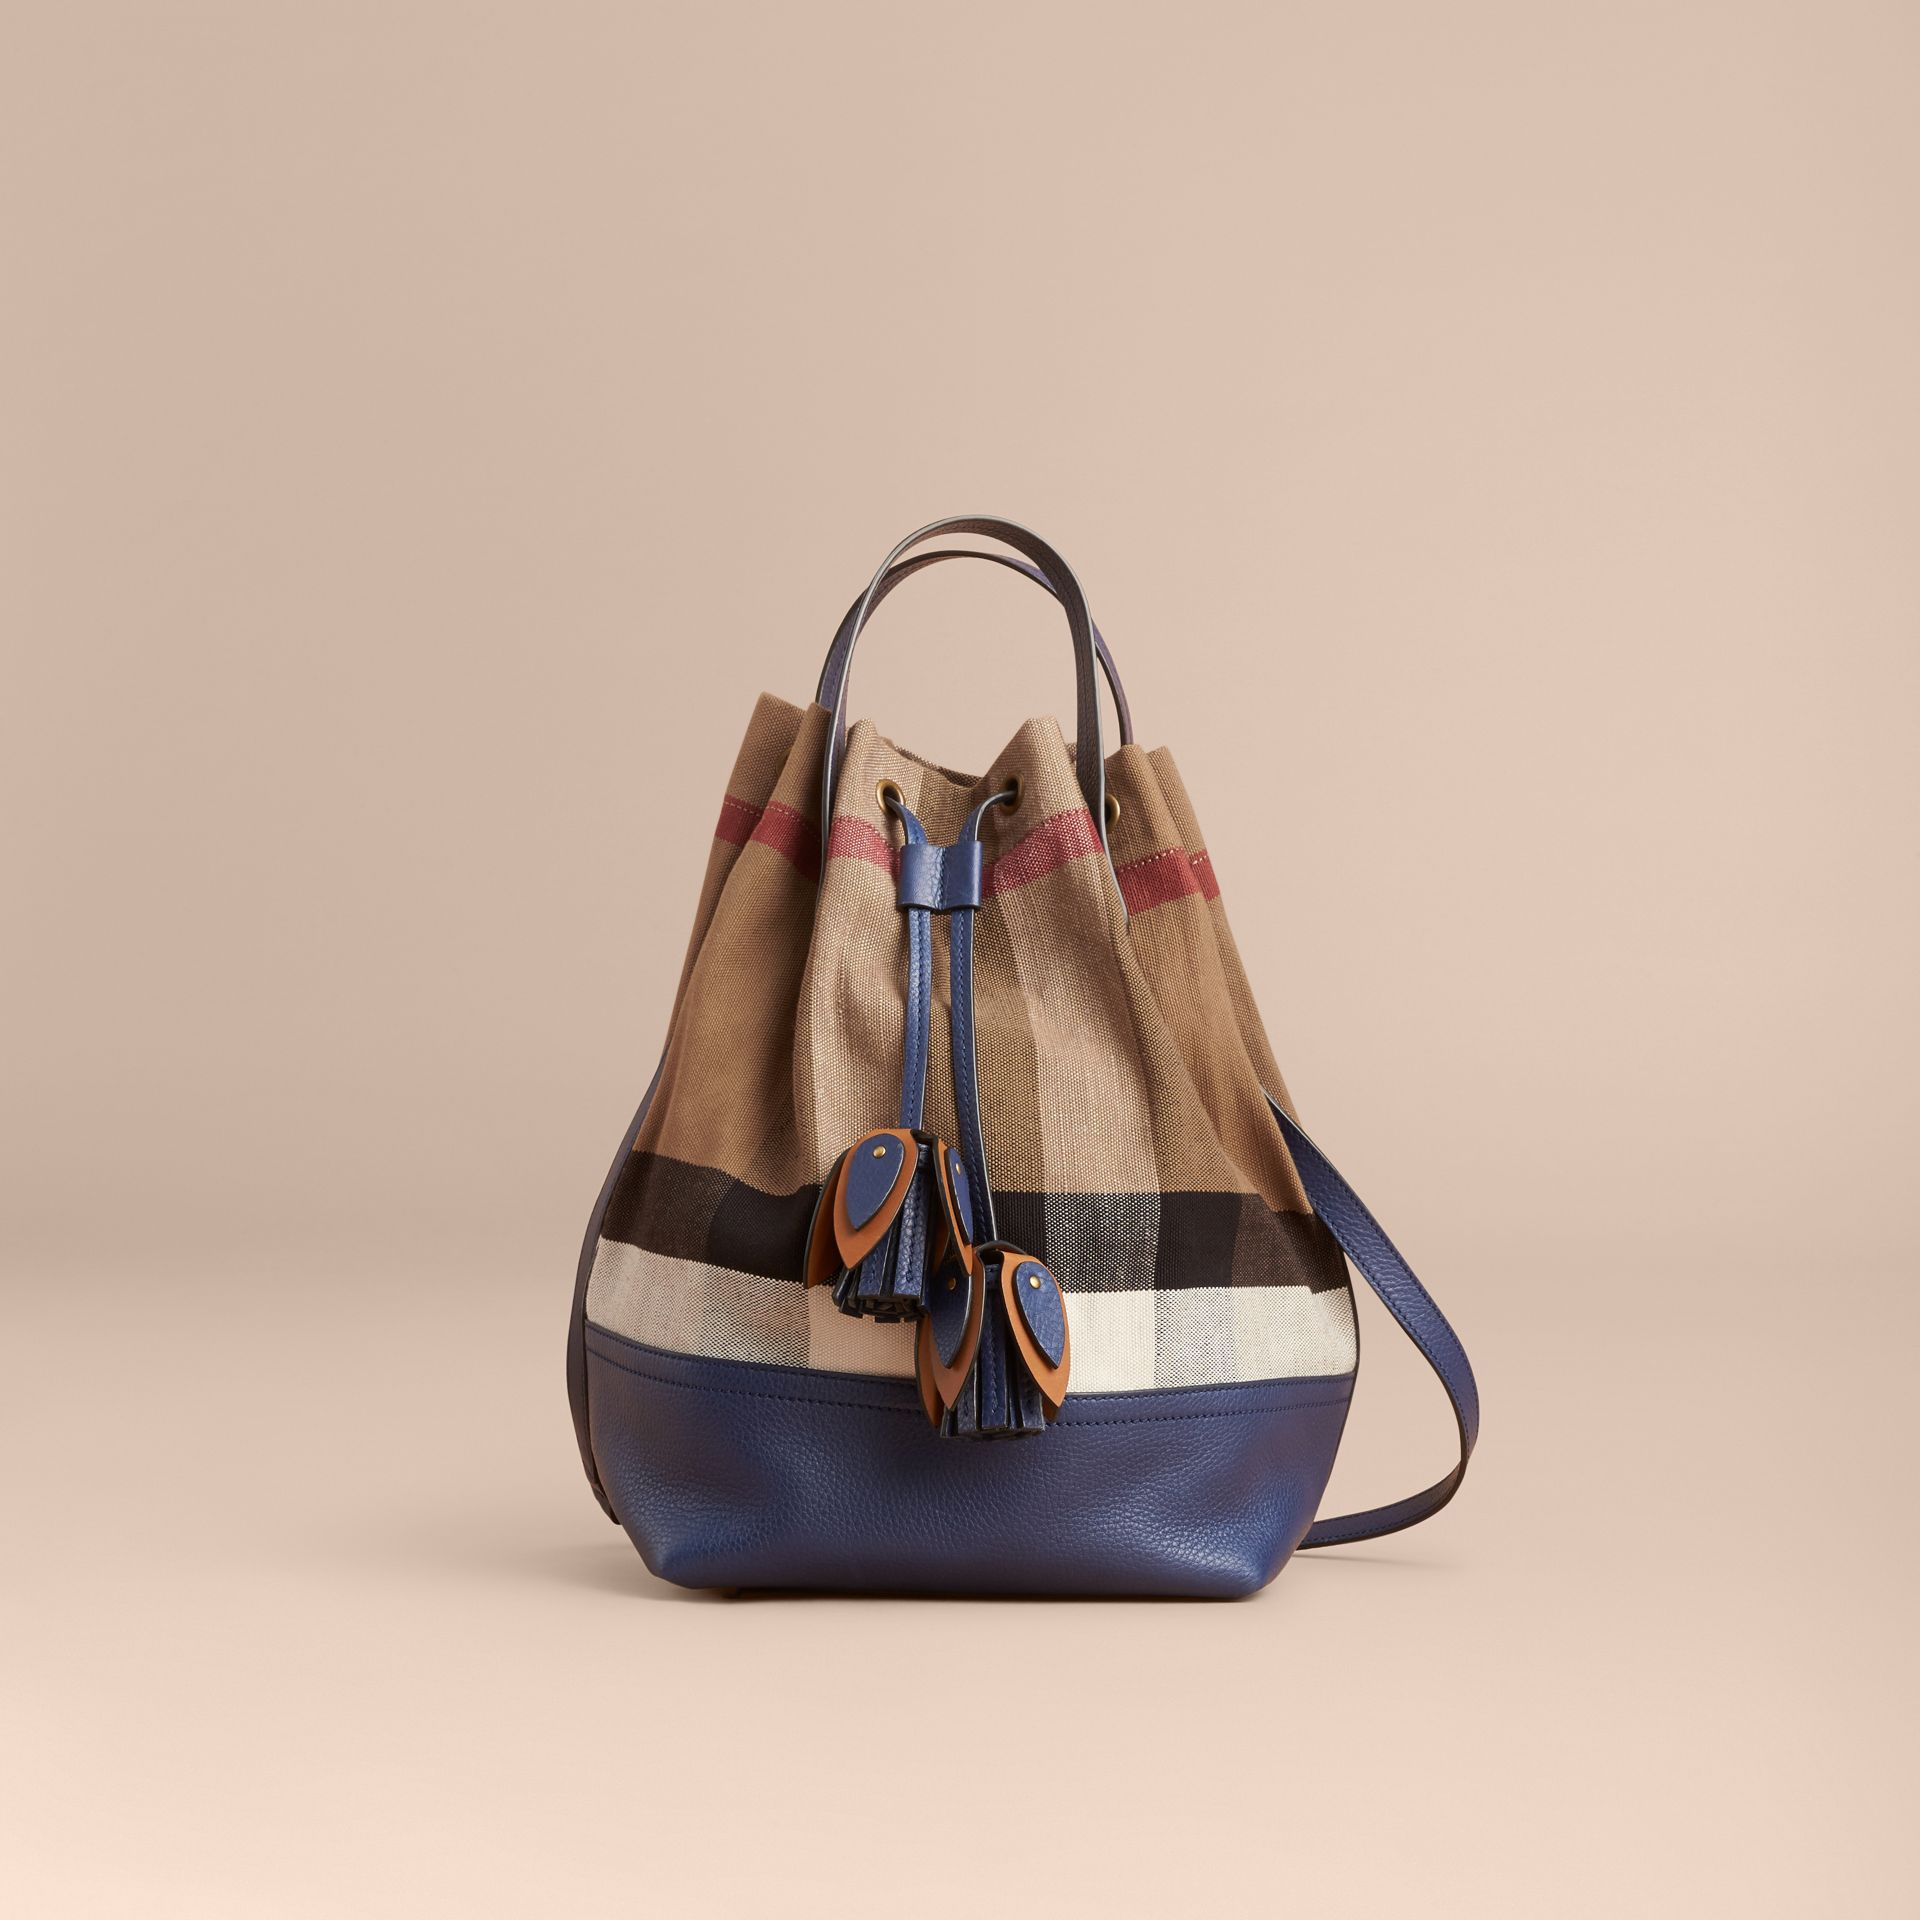 Medium Canvas Check and Leather Bucket Bag in Brilliant Navy - Women | Burberry - gallery image 8